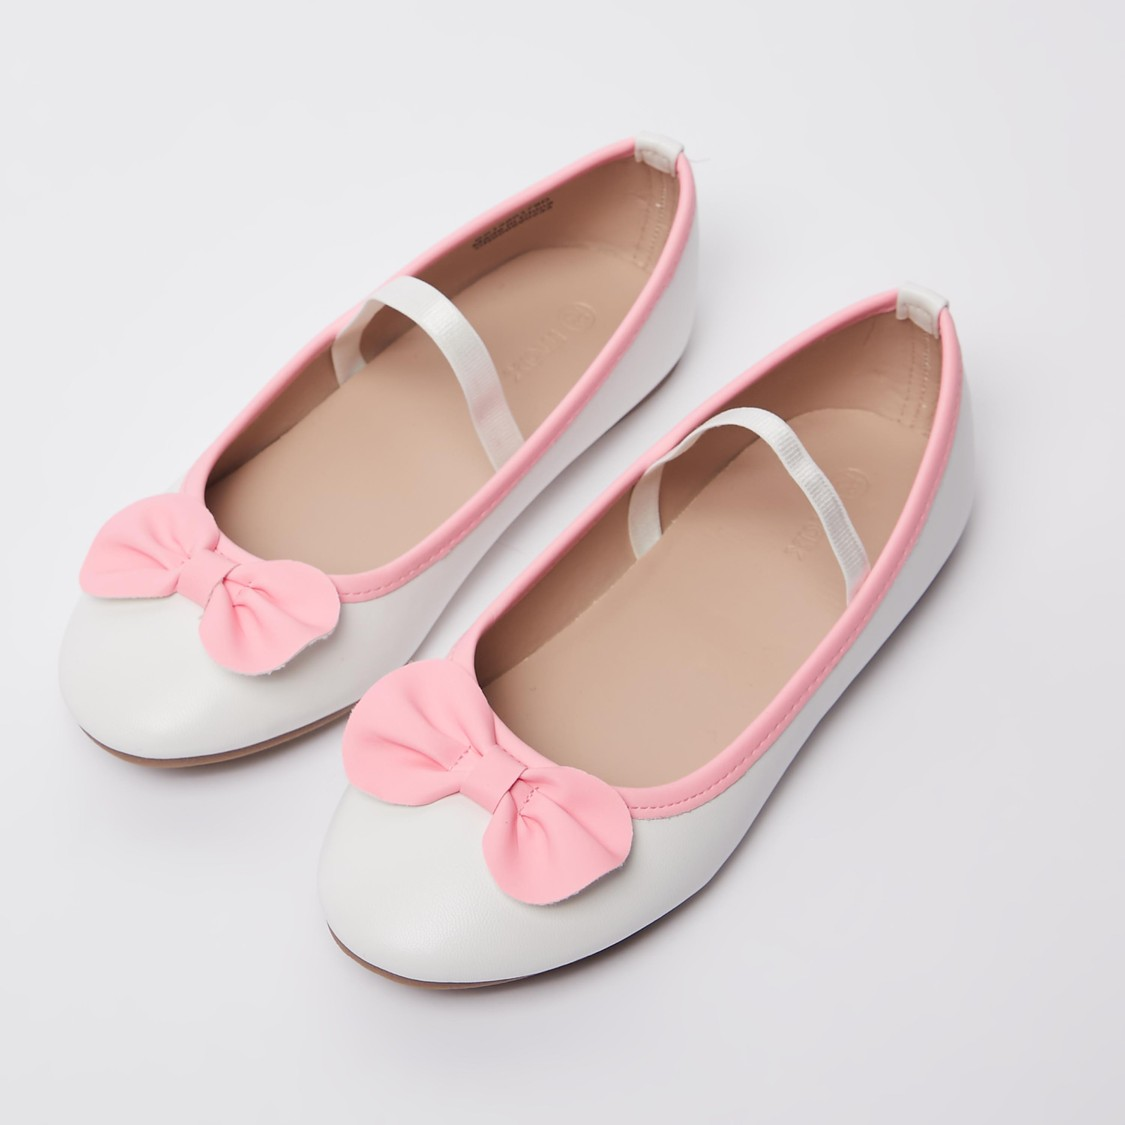 Bow Applique Detail Ballerinas with Elasticised Band